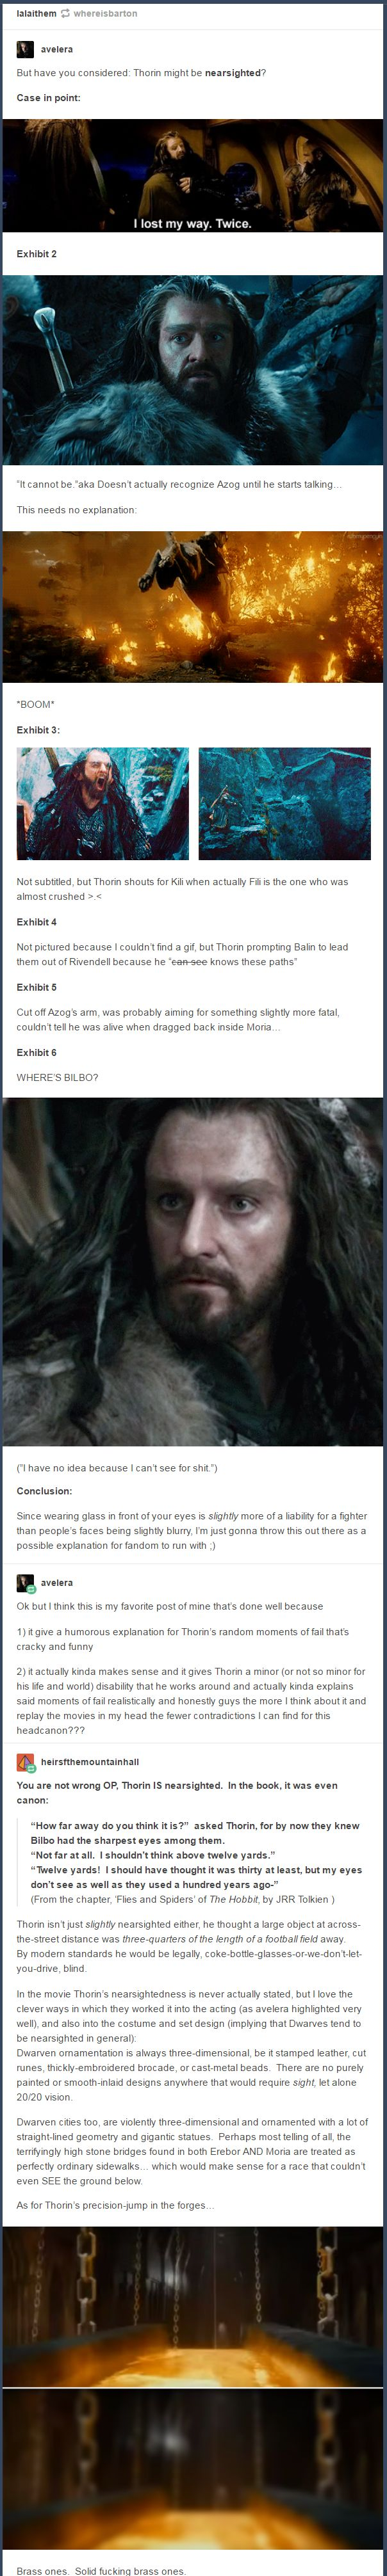 Thorin is nearsighted. Every so often Peter Jackson makes me so happy that I forgive him for Tauriel.